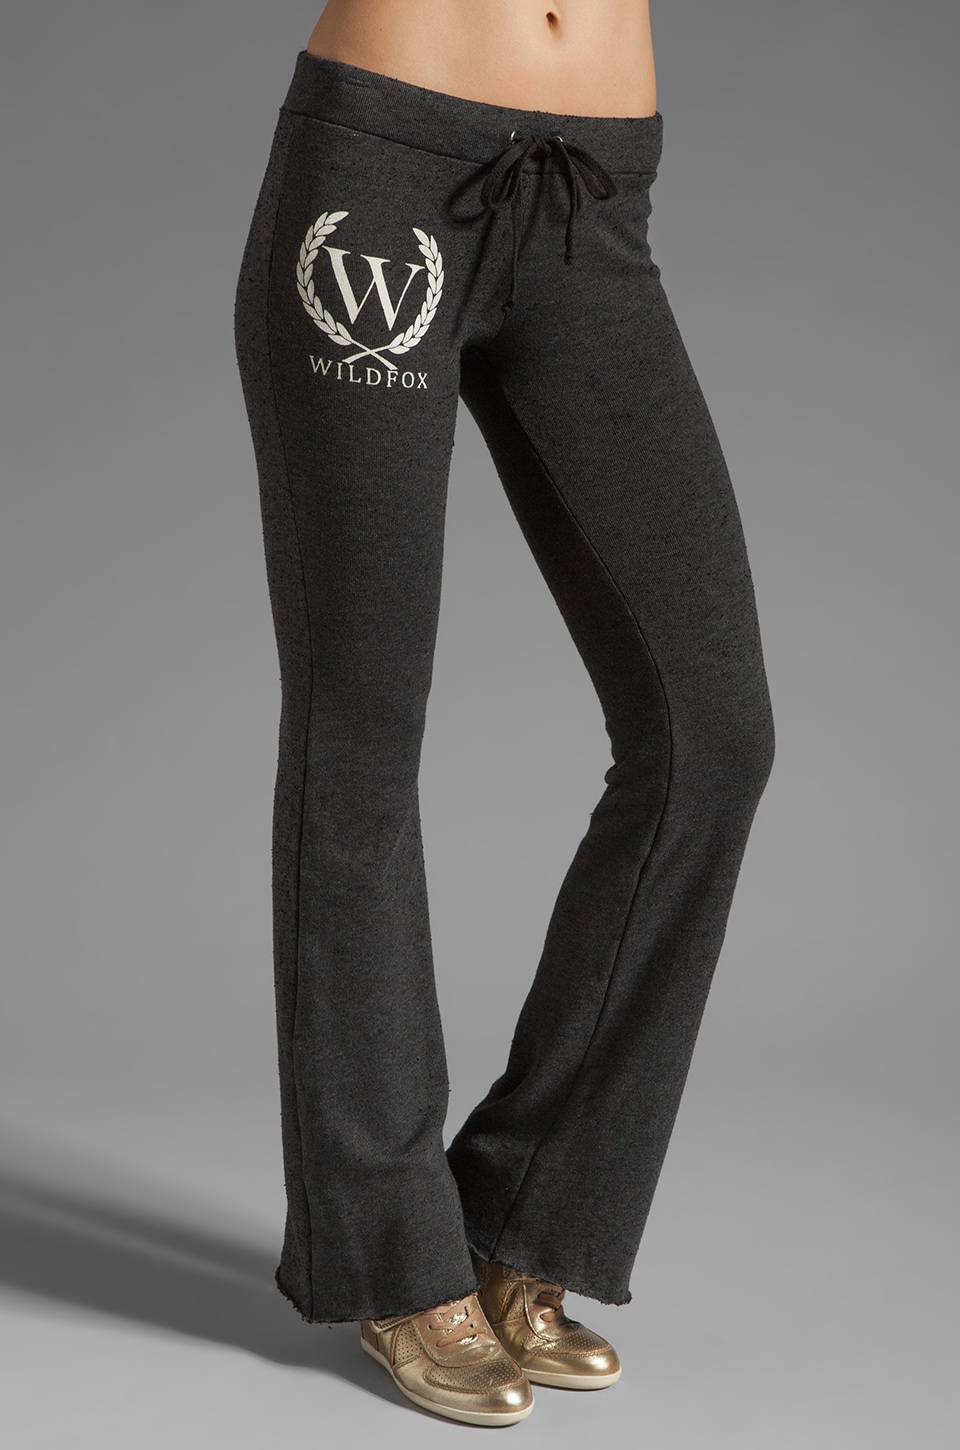 Wildfox Couture Shopping Sweats Yacht Club Pants in Clean Black